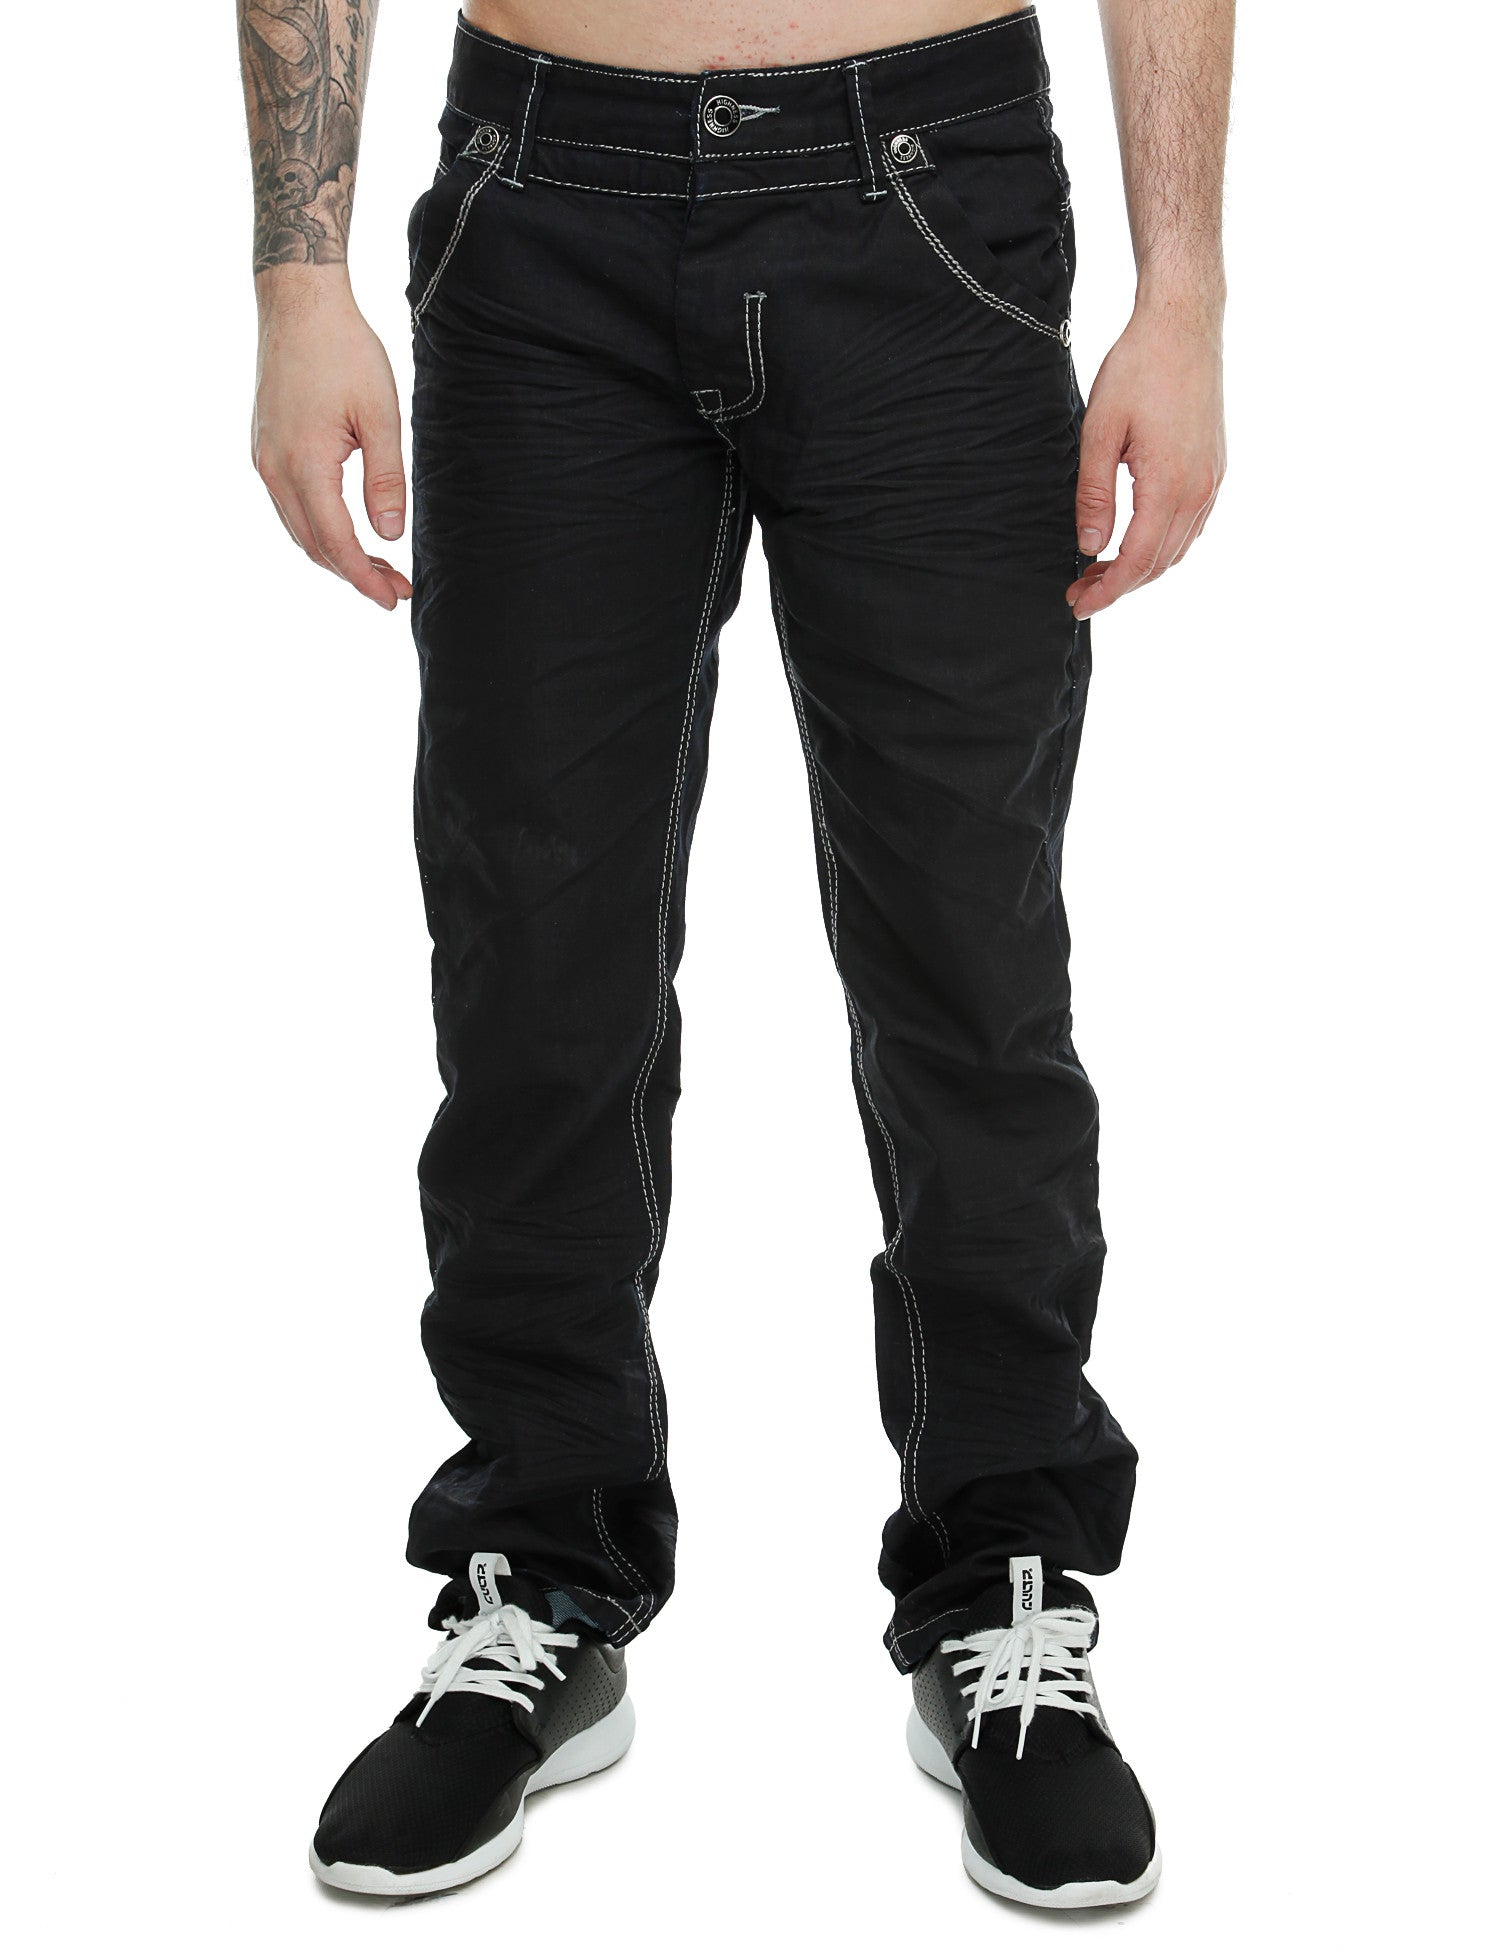 Highness Slim Fit Jeans HN-9007# Black